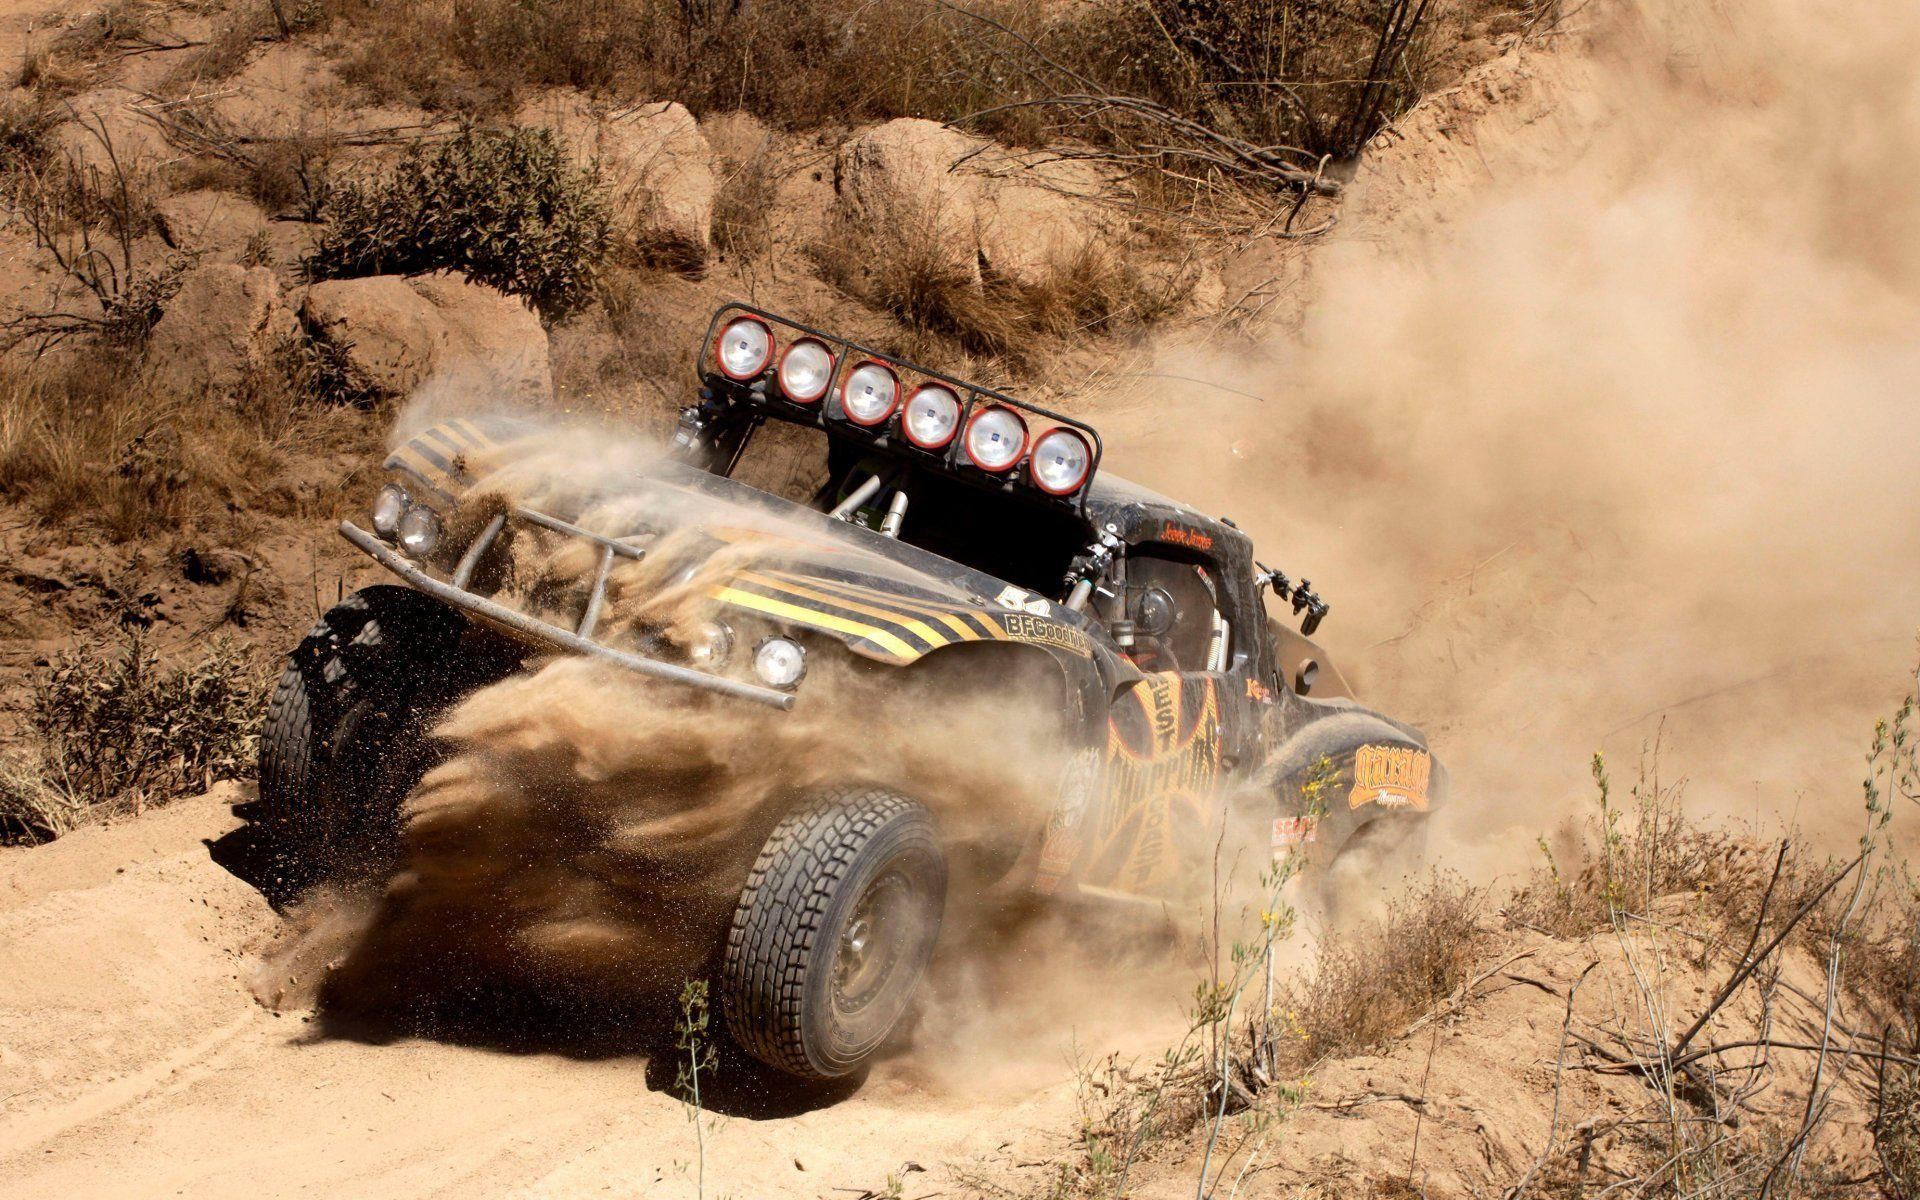 chevy 1500 trophy truck jeep suv race rally desert california ...